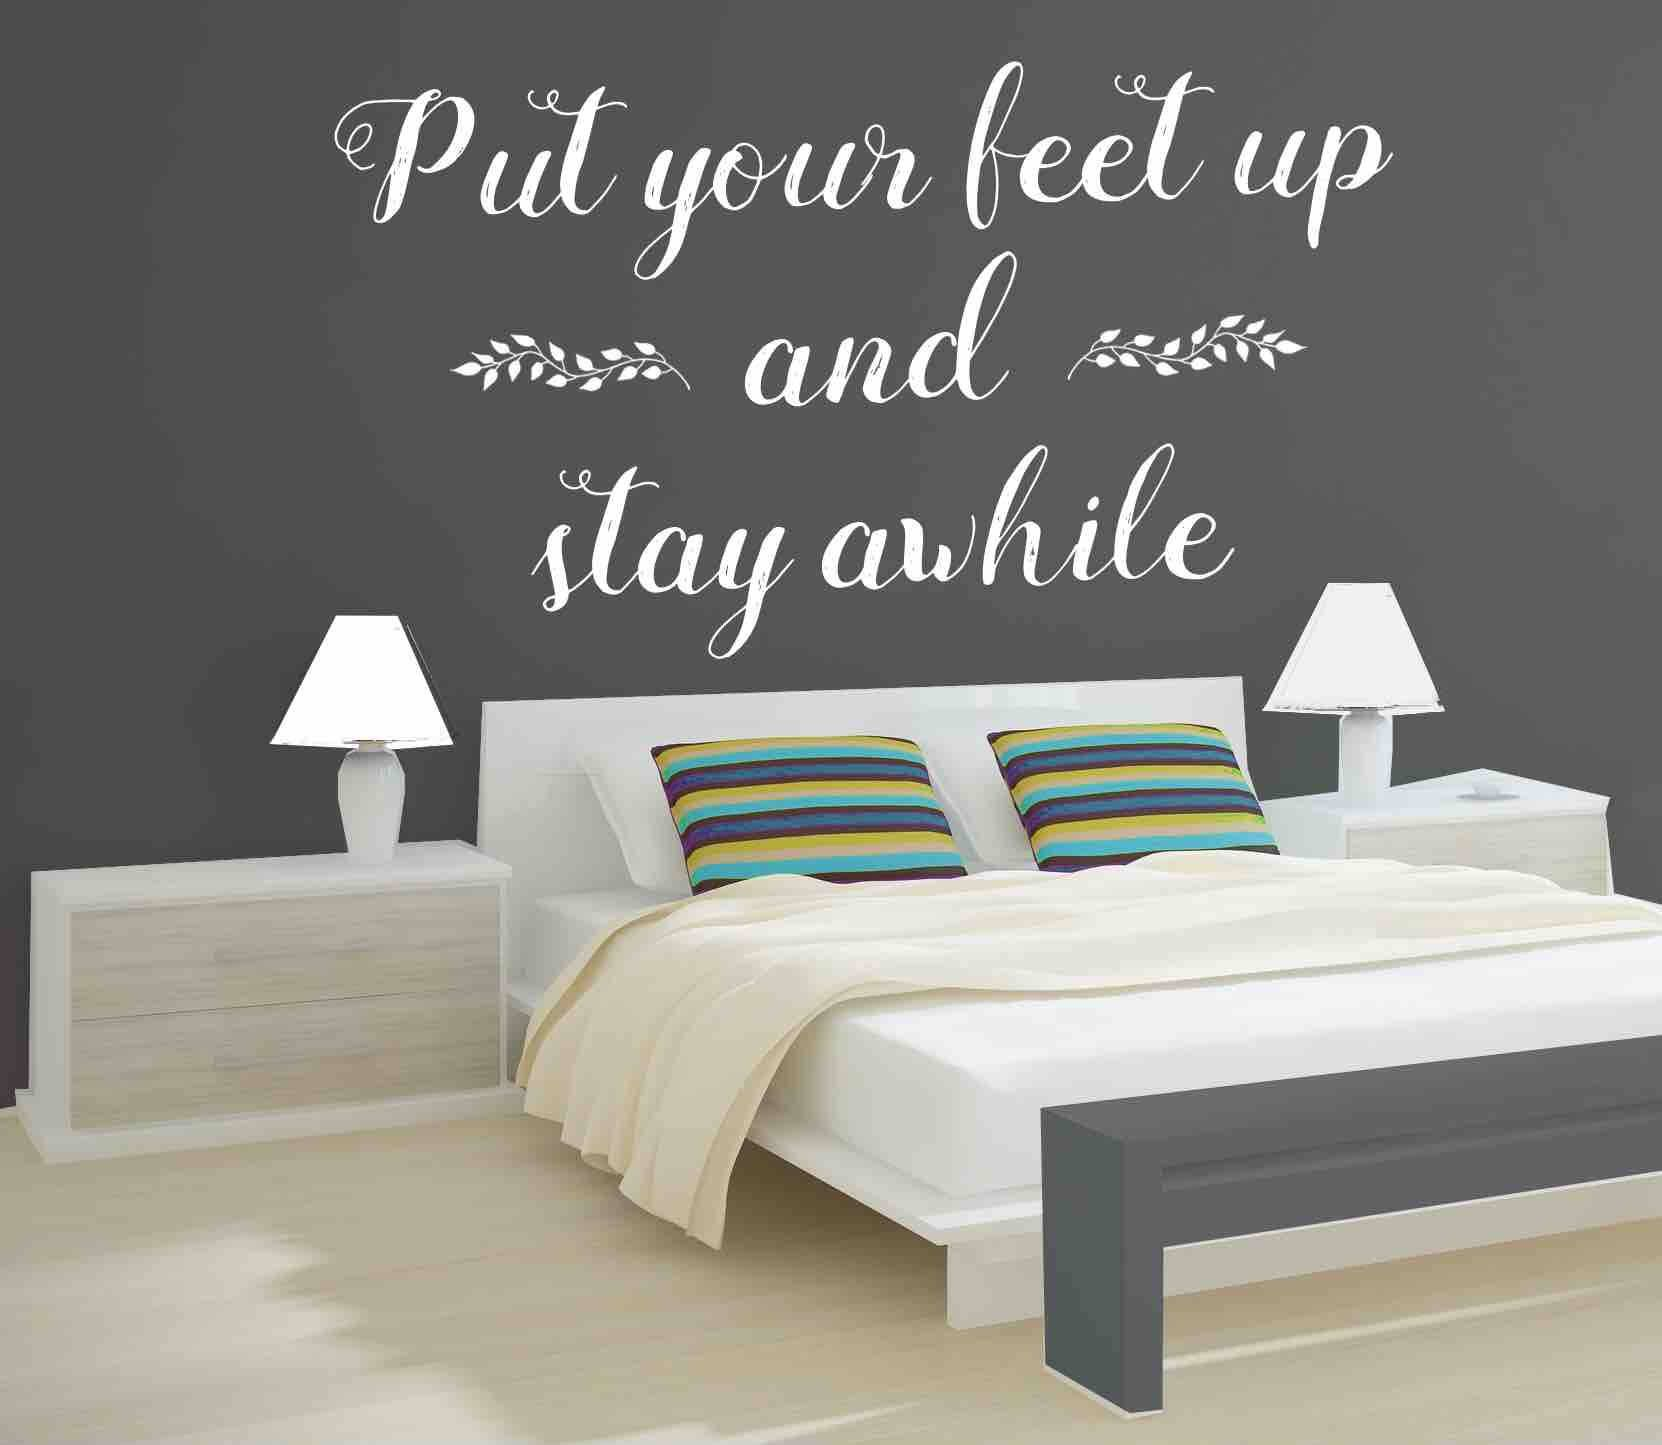 Letters To Put On Wall Vinyl Wall Decal Put Your Feet Up & Stay Awhile Decal Vinyl